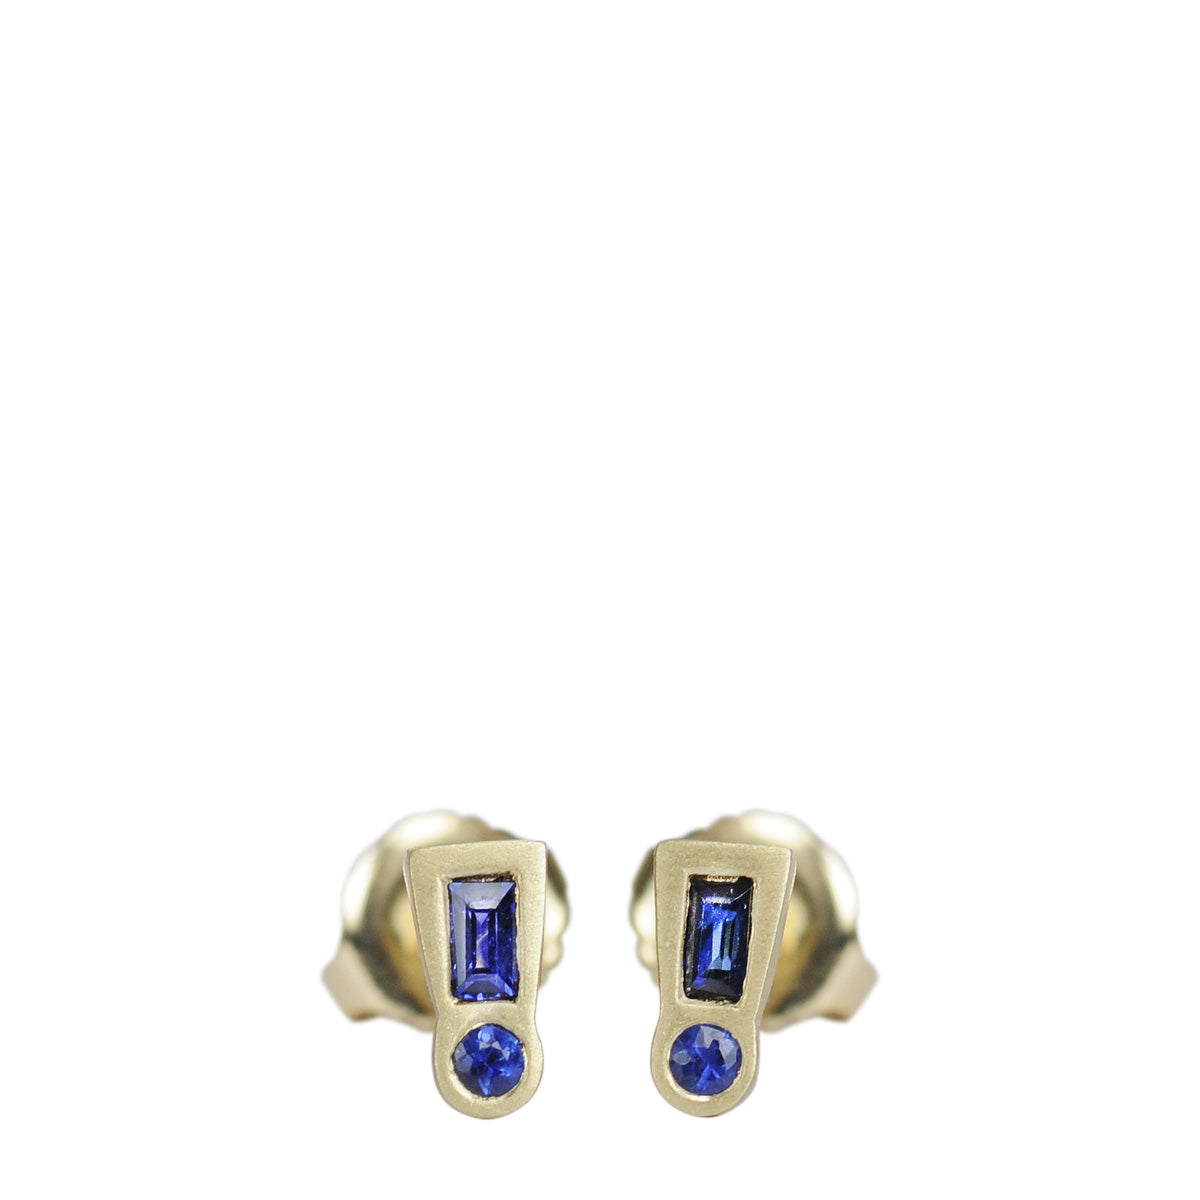 18K Gold Blue Sapphire Exclamation Point Stud Earrings